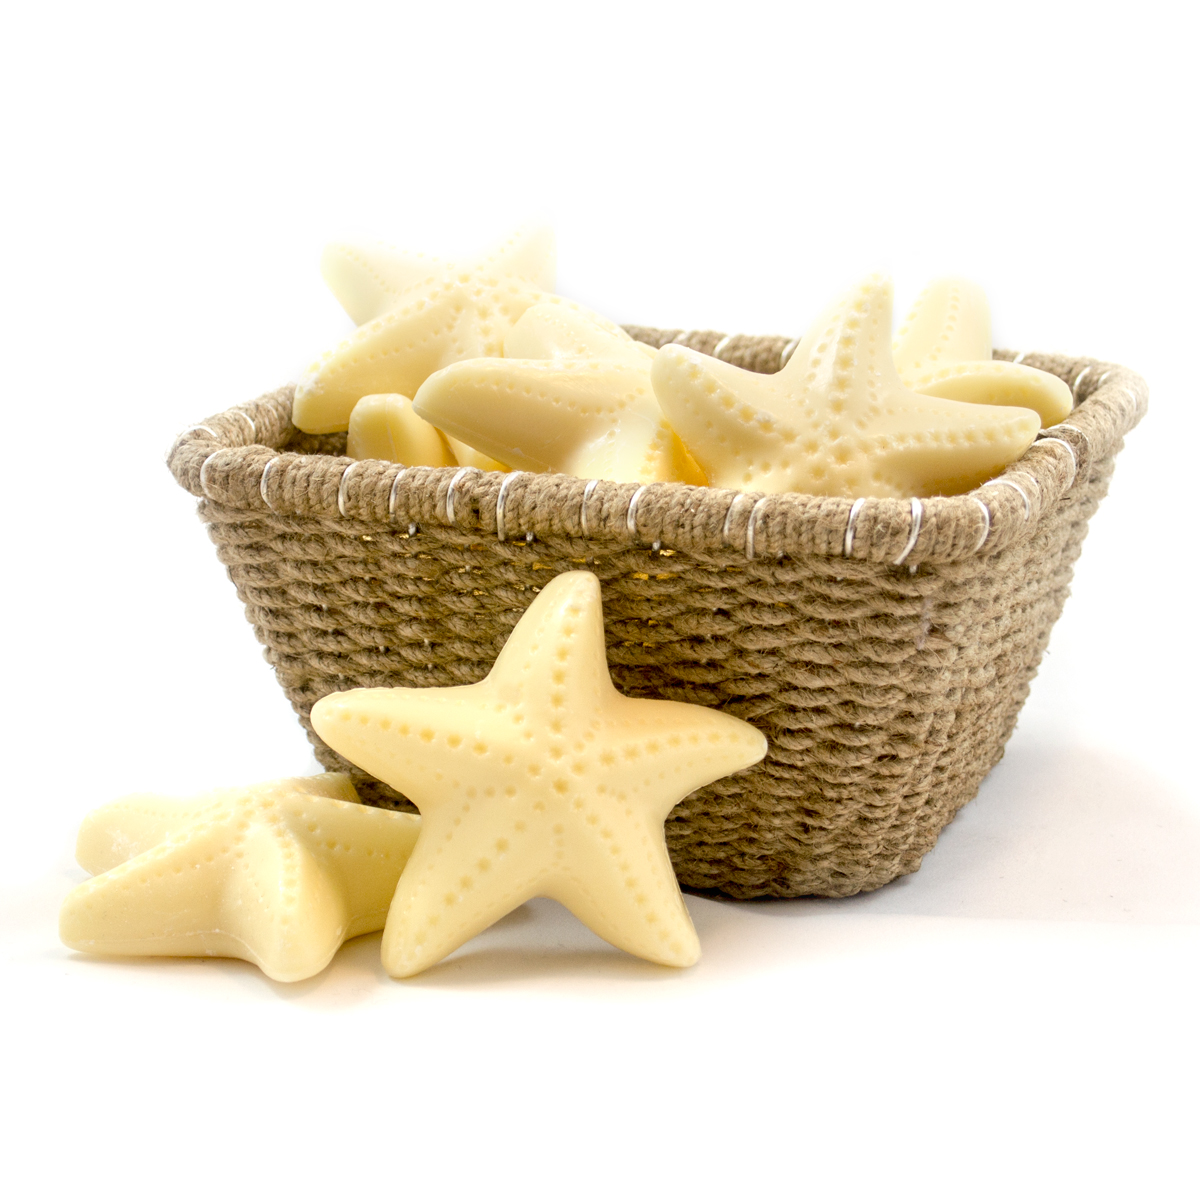 Starfish-Soap-1.jpg